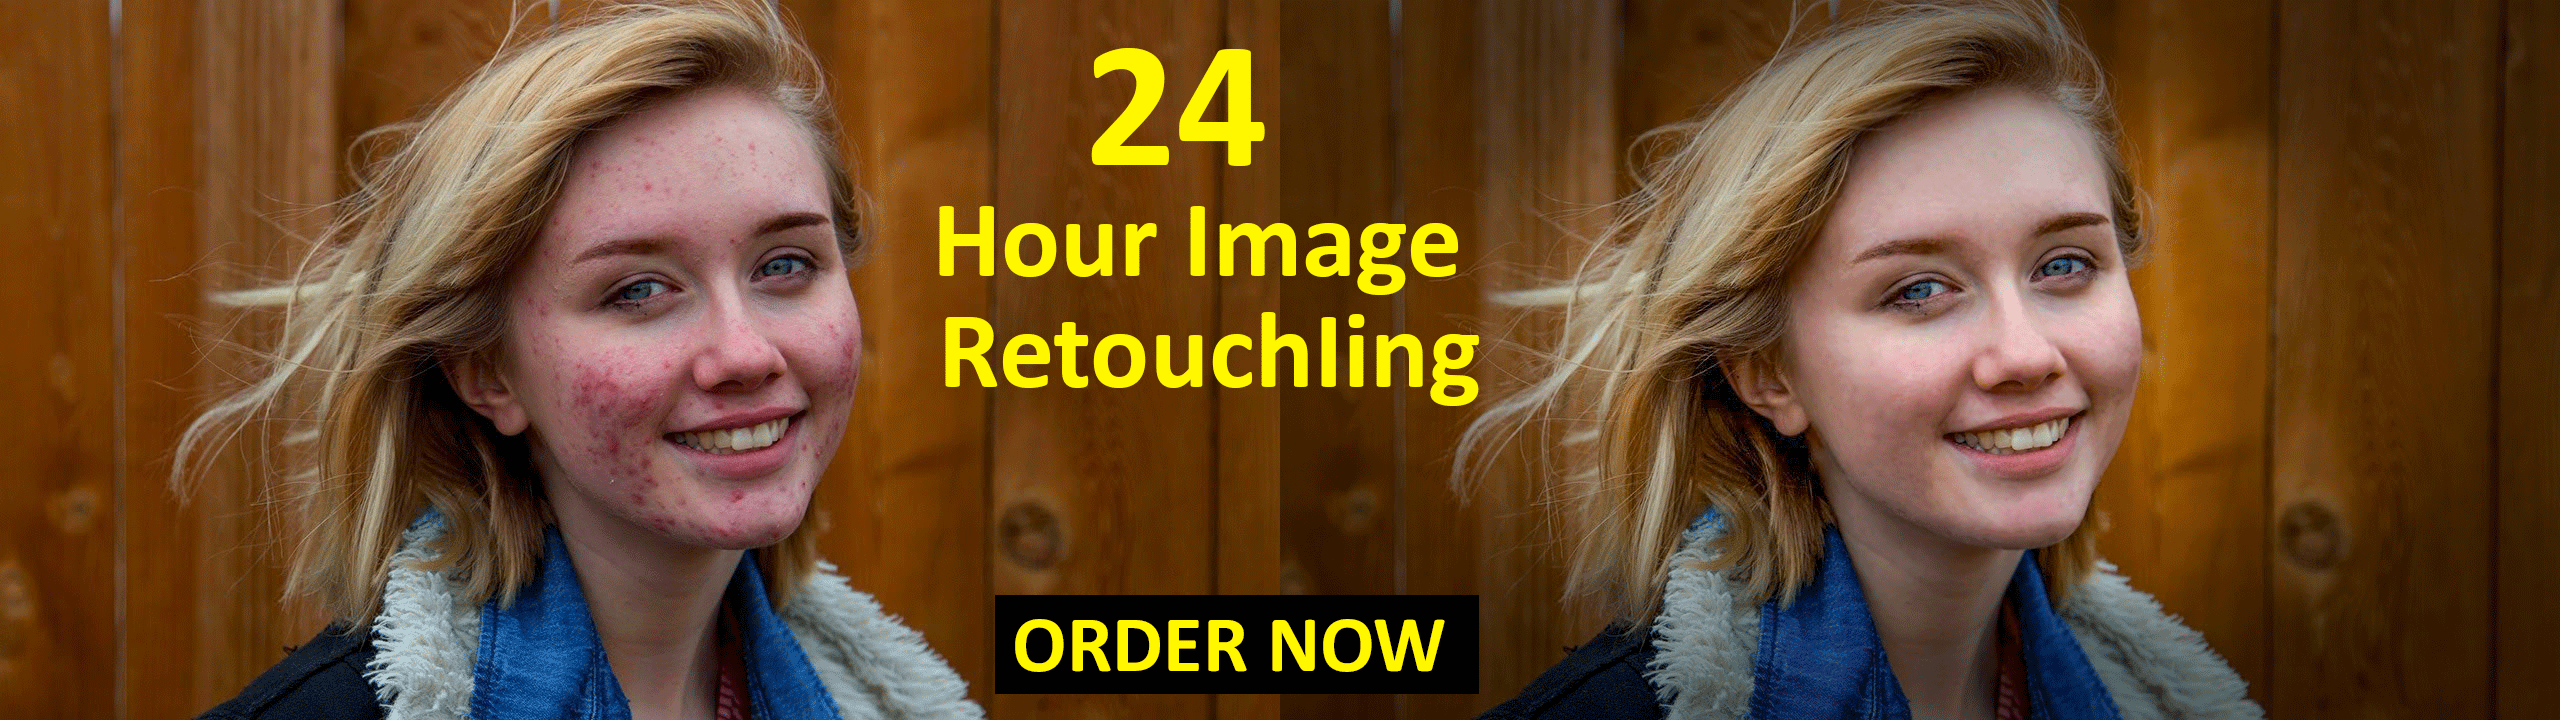 Photoshop Editing Image Retouch Background Removal Changing Png Jpeg More Format Convert Your Photo Into Any Forma Photoshop Editing Photoshop Retouching